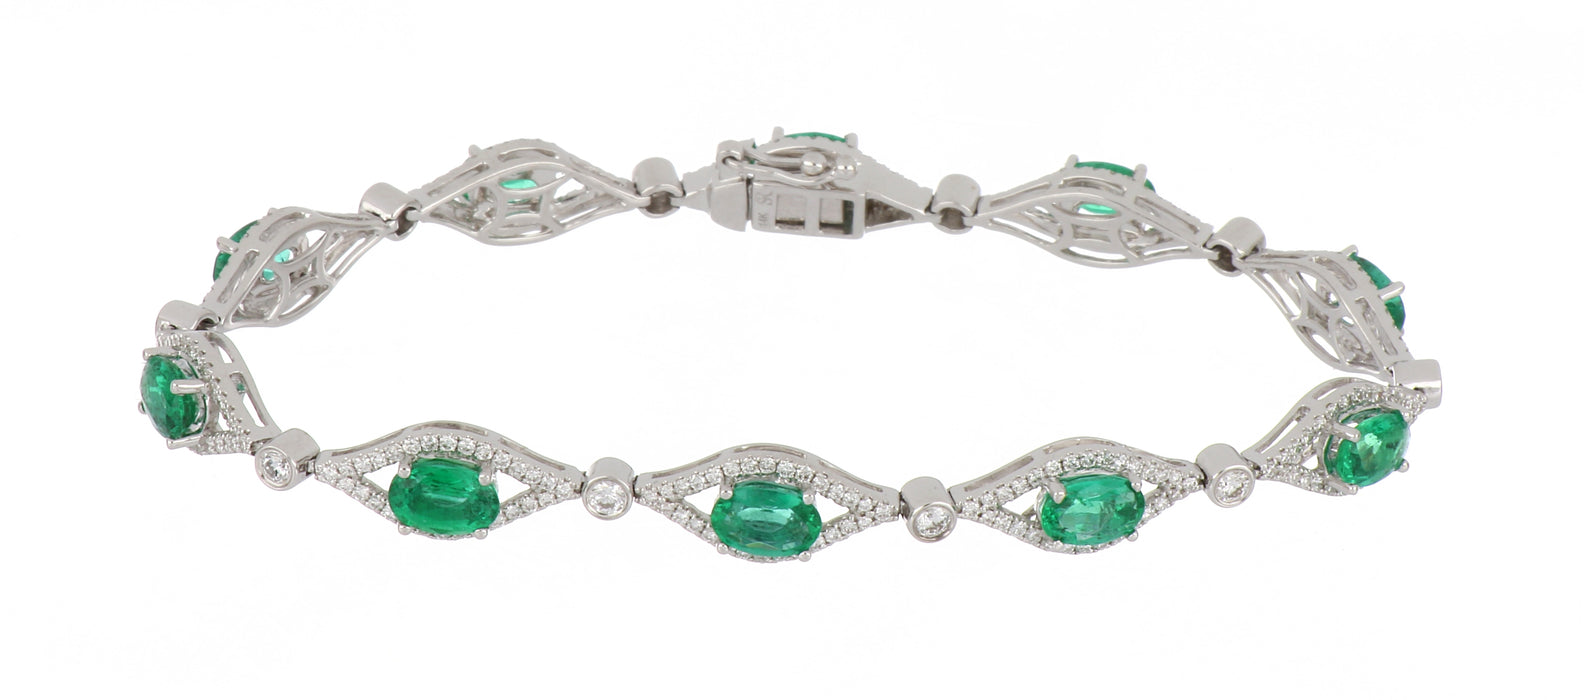 Emerald Ladies Bracelet (Emerald 4.1 cts. White Diamond 1.4 cts.)